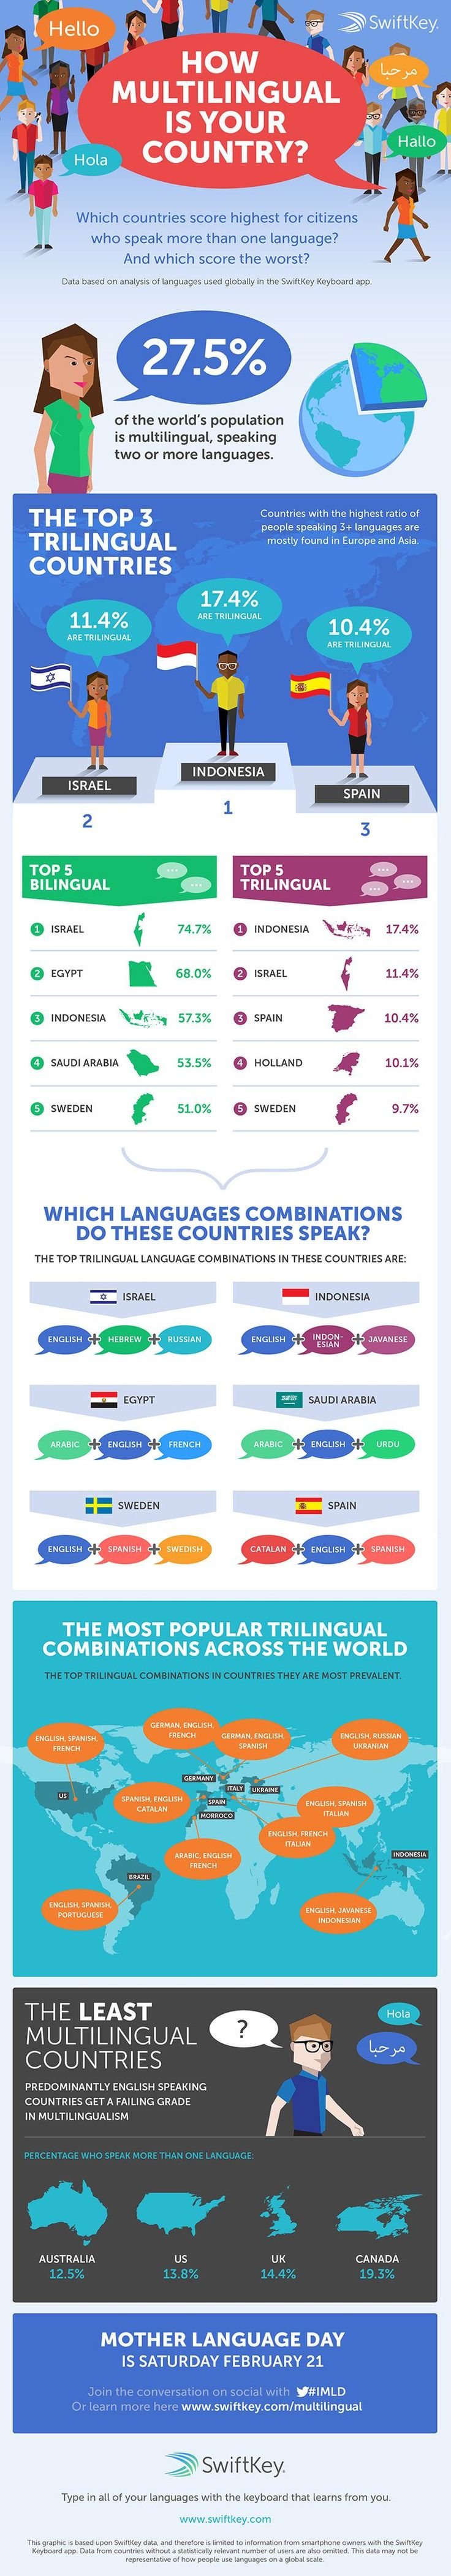 How Multilingual is Your Country? #infographic #Language #Infografía